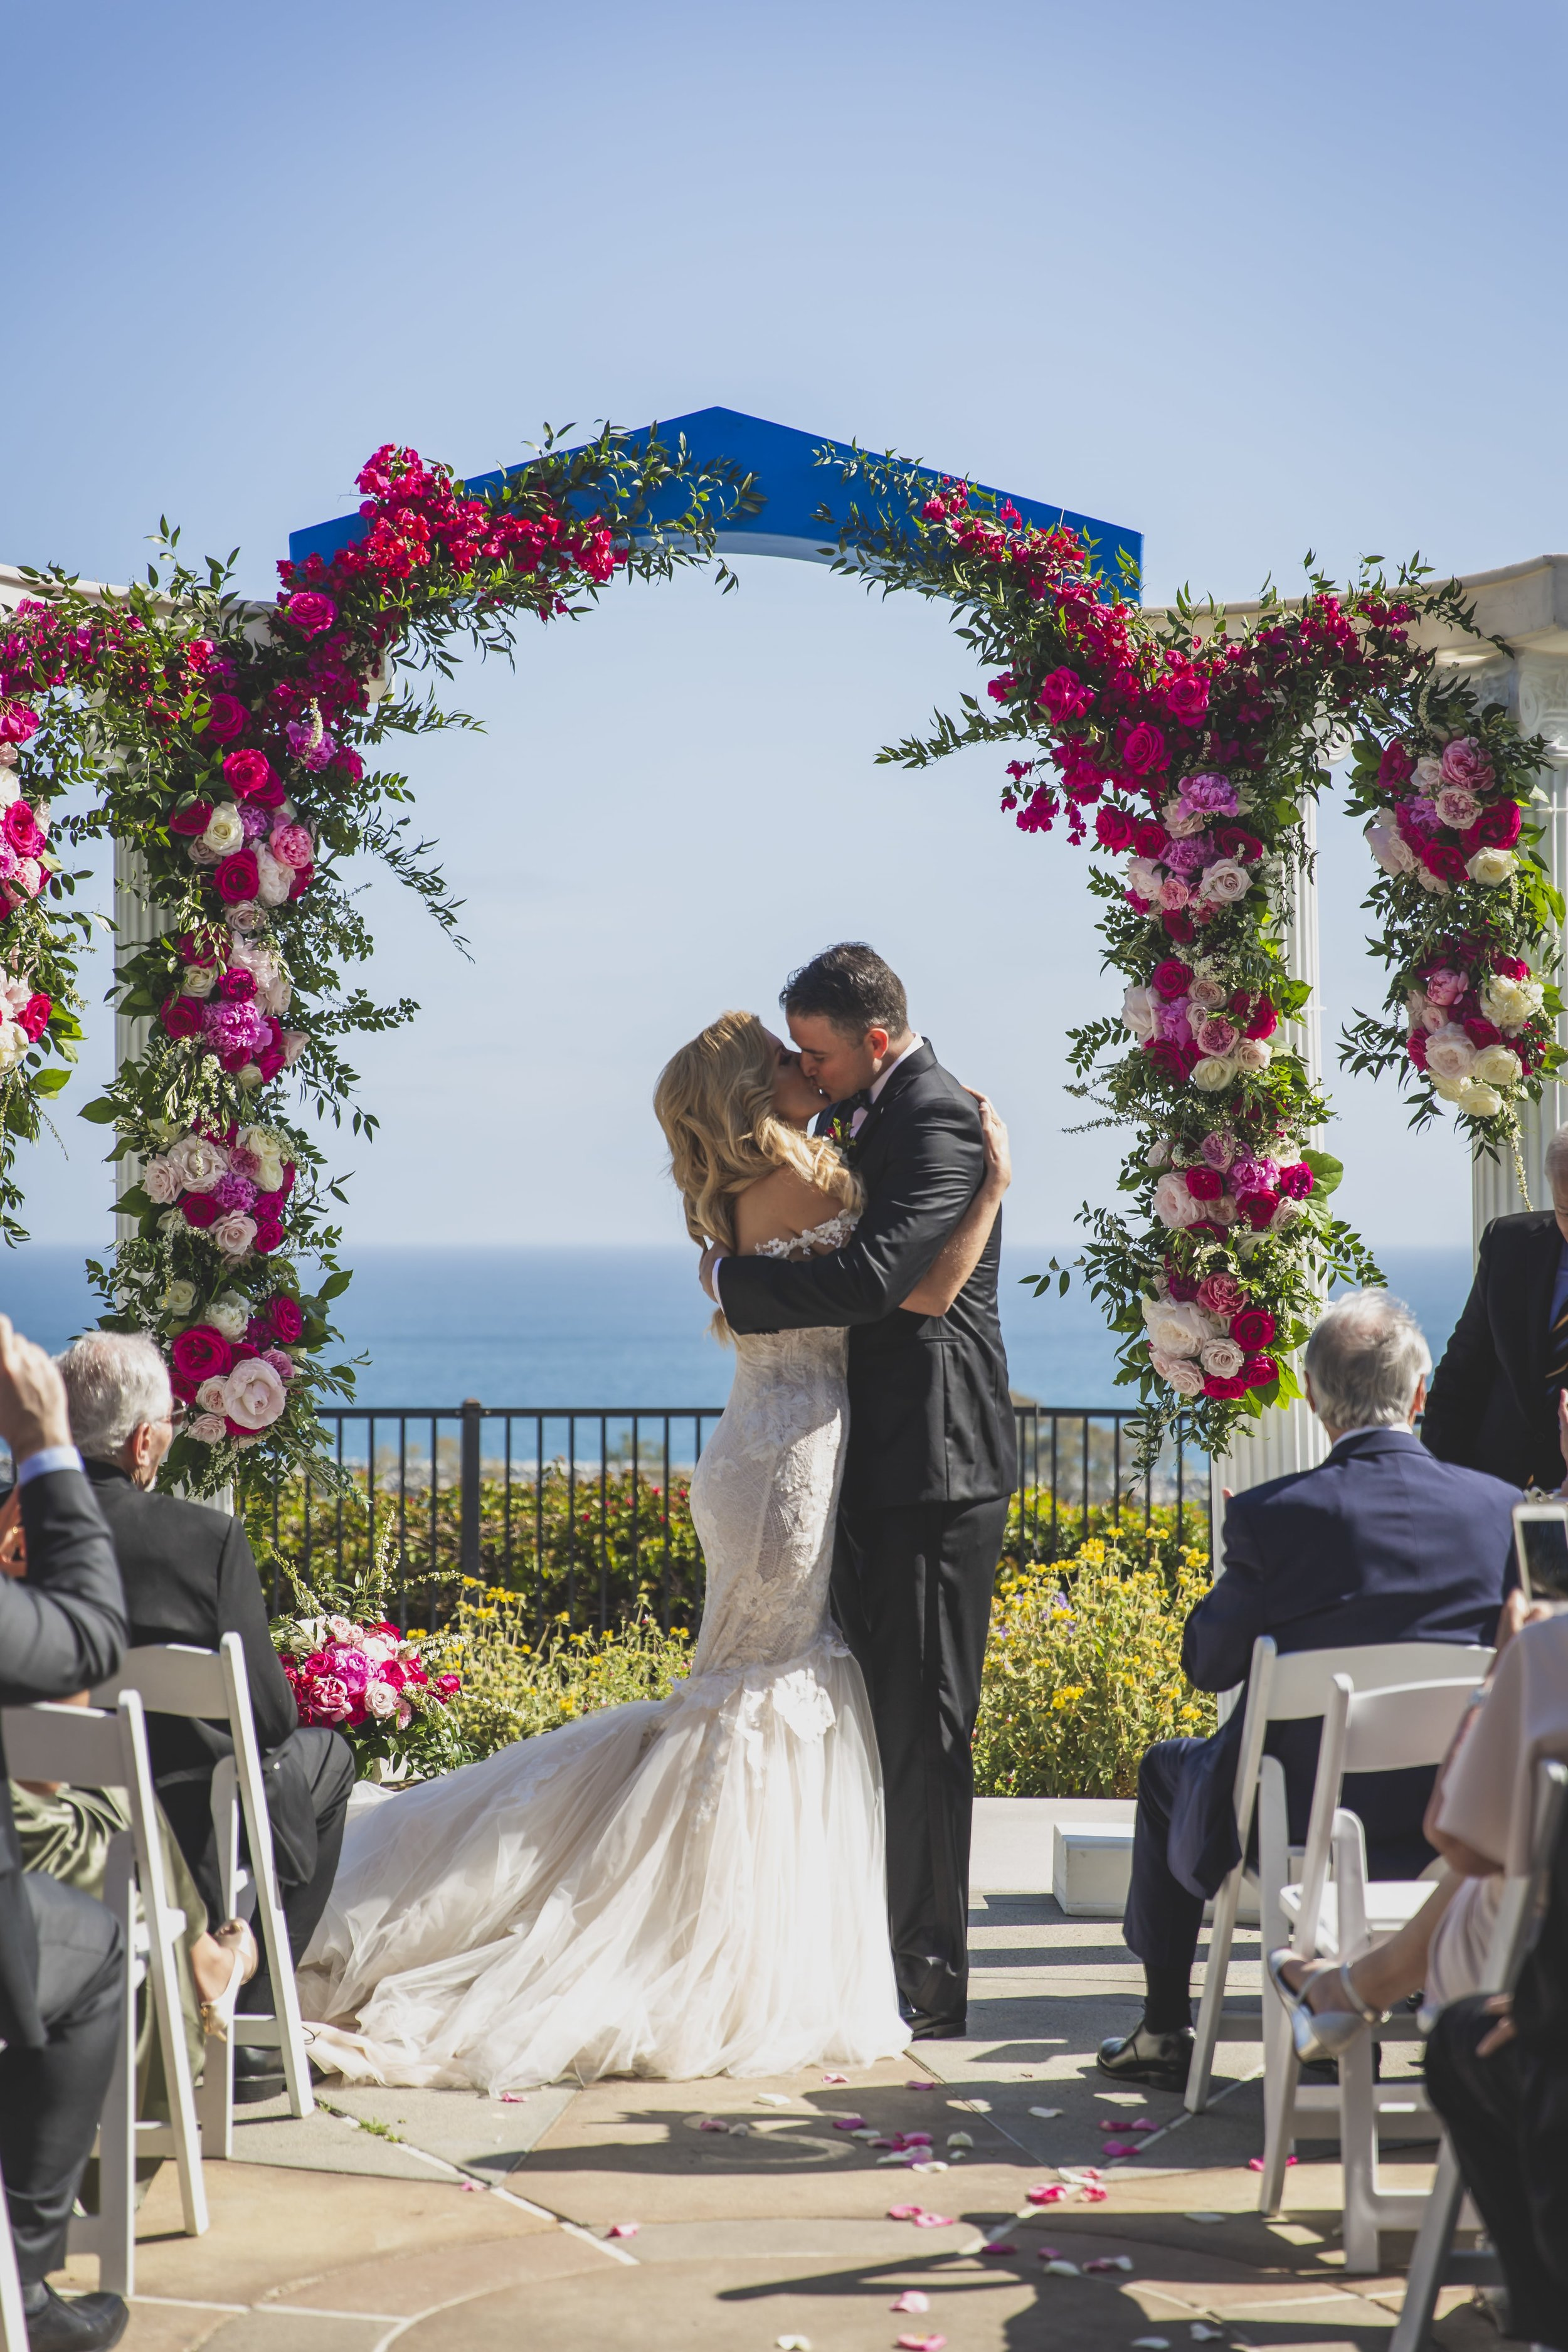 Wedding Photography Packages - Heritage Park, Dana Point, CA - Groom kissing the bride to seal their marriage during the wedding ceremony.